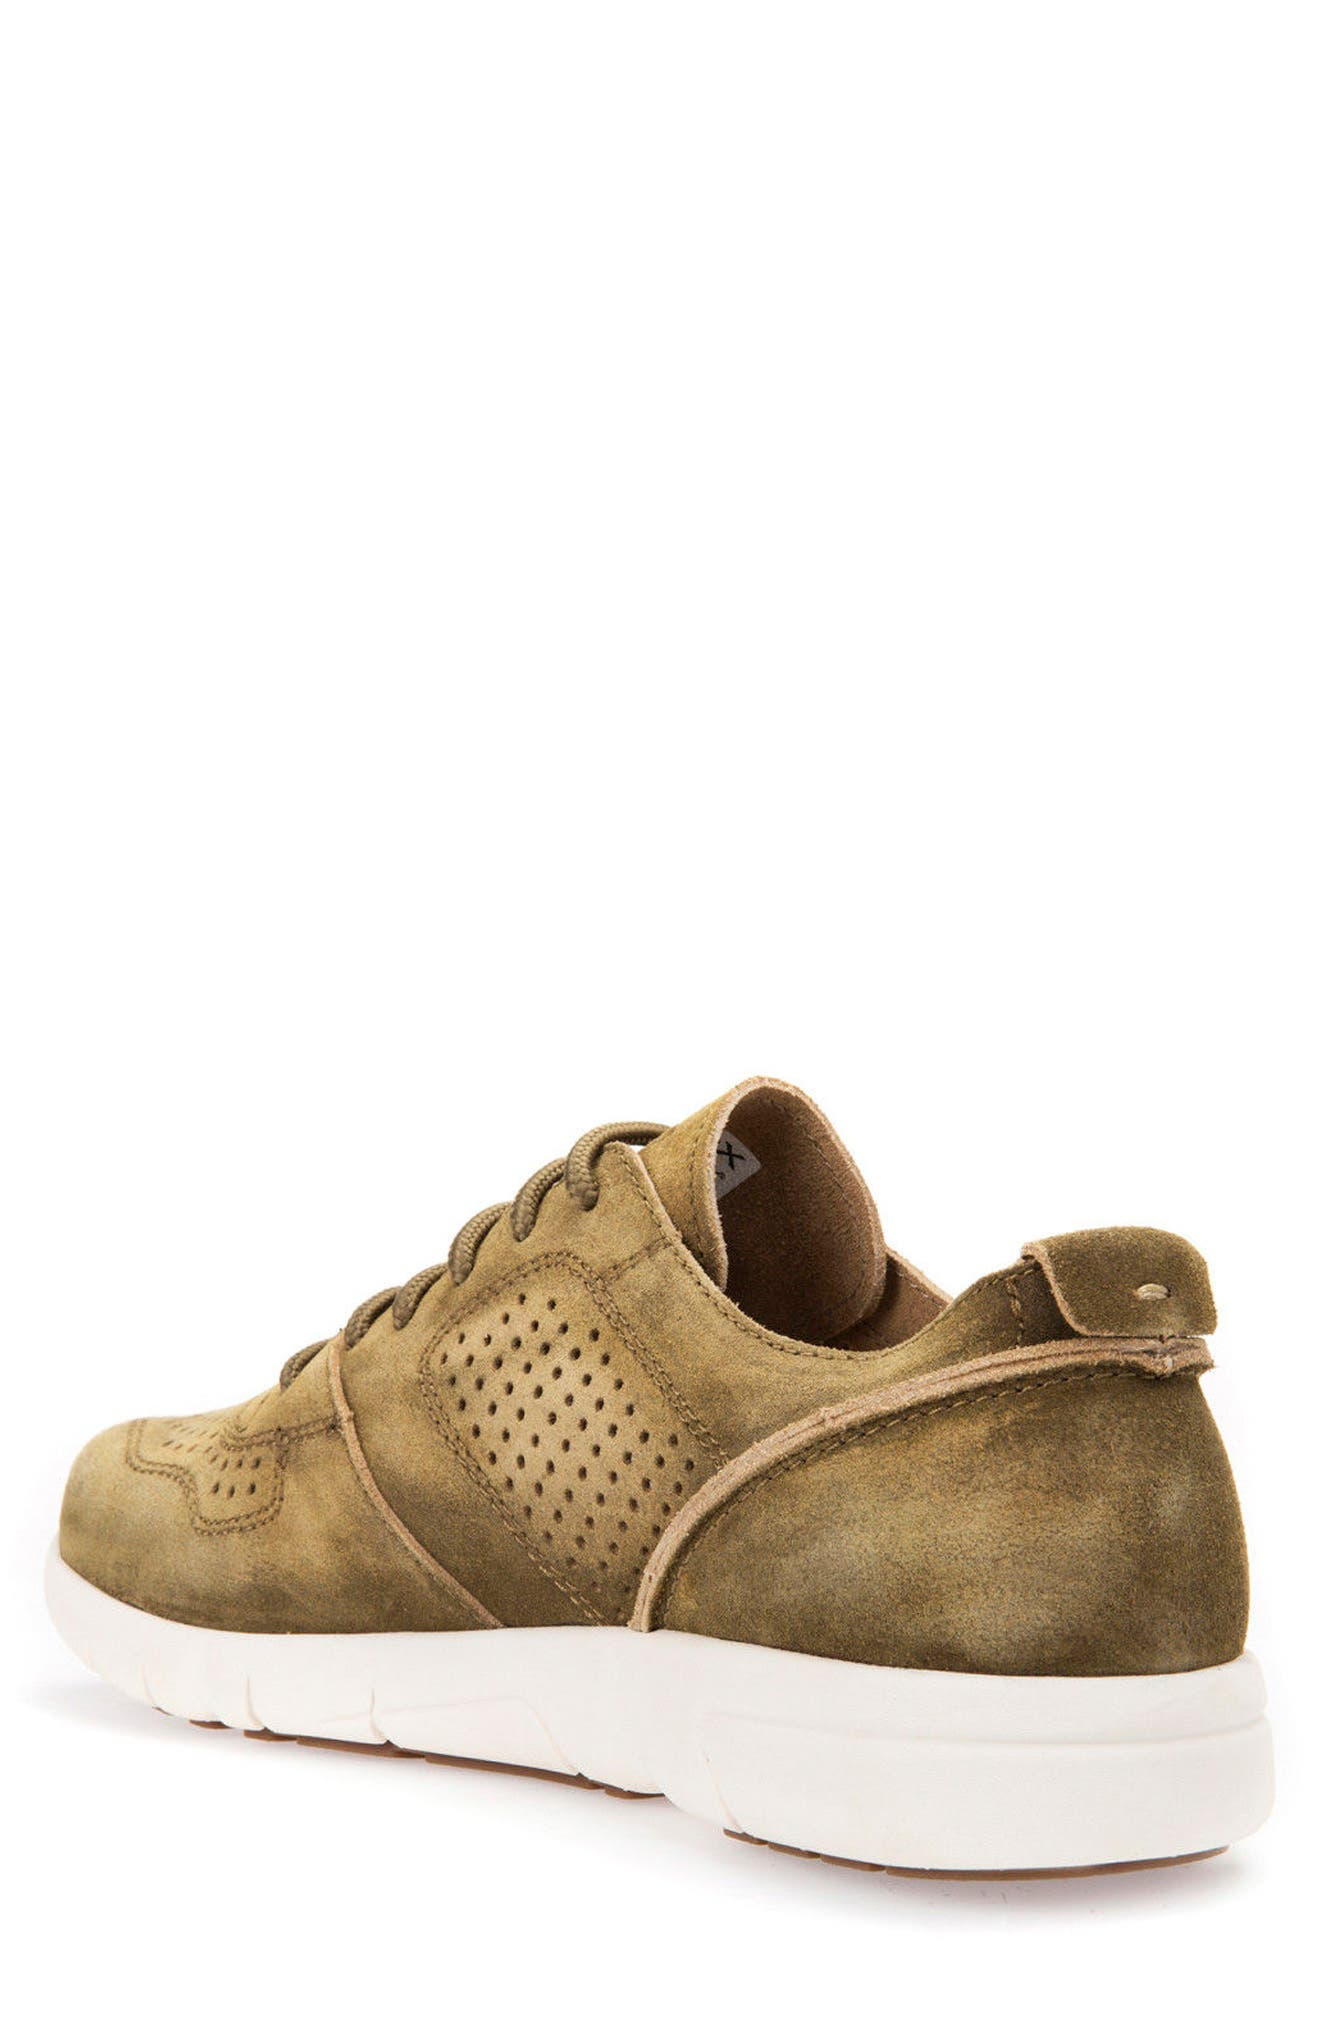 Brattley 2 Perforated Sneaker,                             Alternate thumbnail 2, color,                             Musk Suede